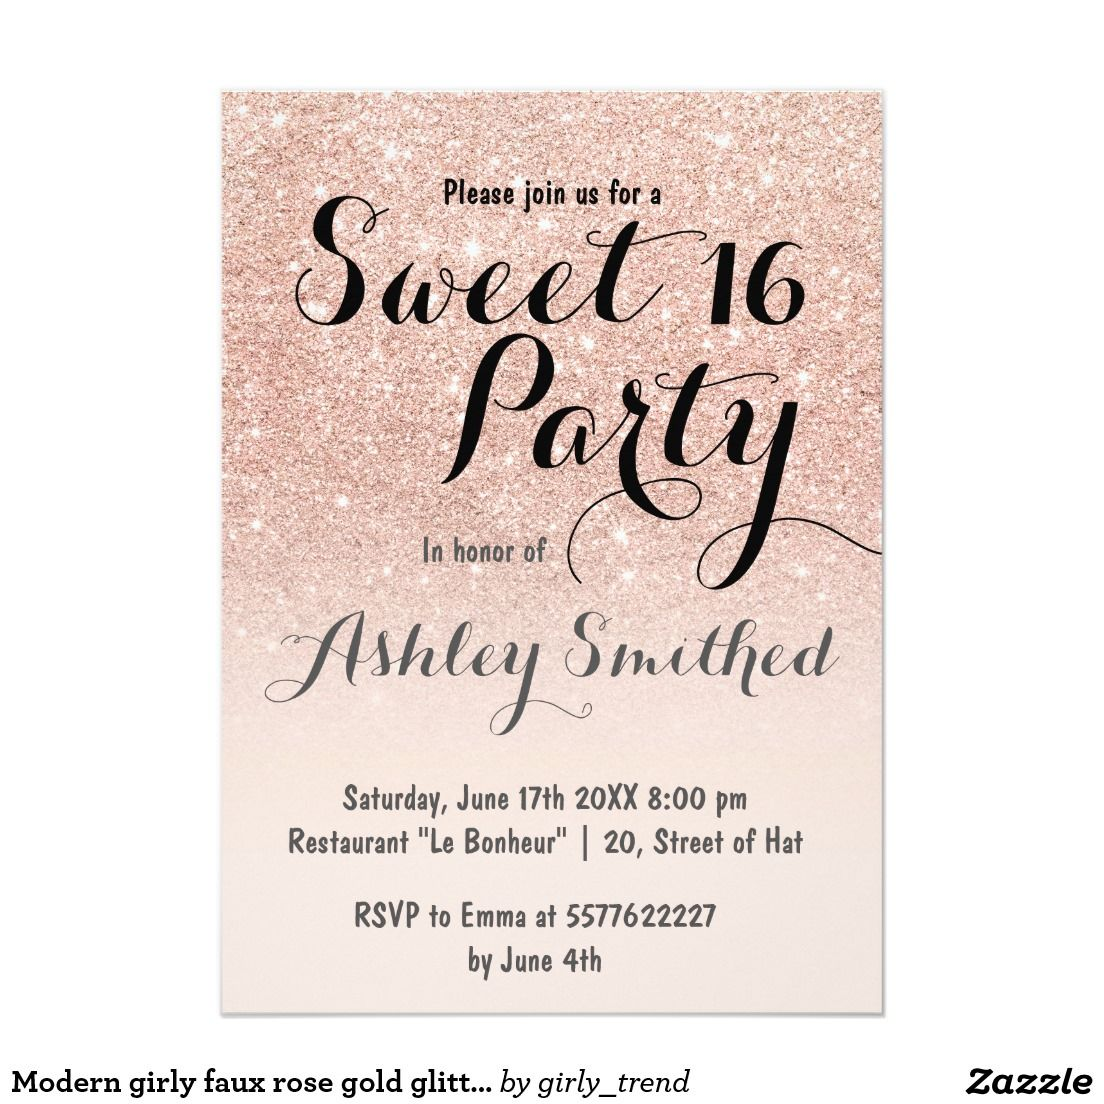 Modern girly faux rose gold glitter ombre sweet 16 card sweet 16 modern girly faux rose gold glitter ombre sweet 16 5x7 paper invitation card filmwisefo Images